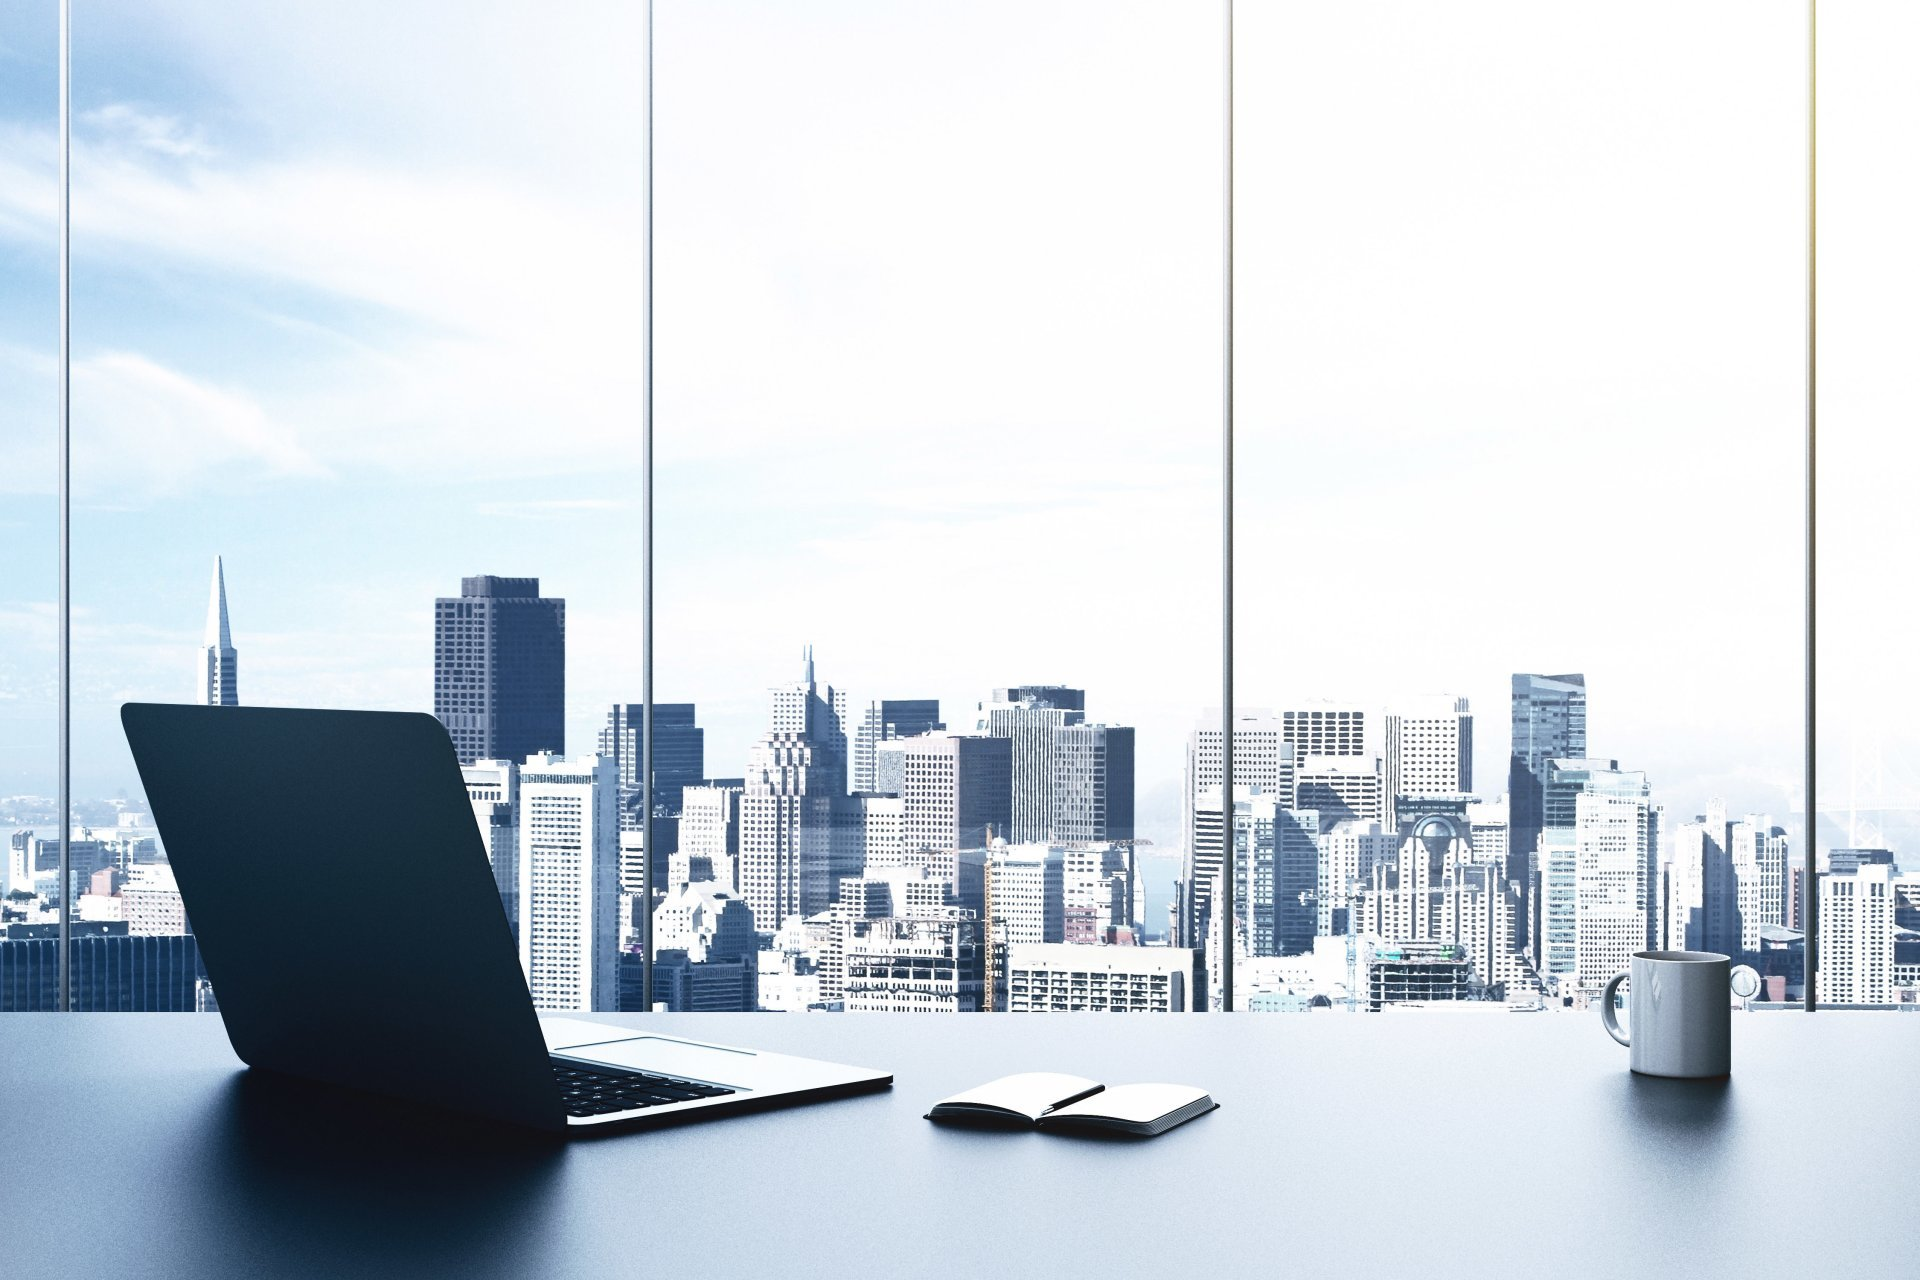 office wallpapers hd. businessofficewallpapershdimages9 office wallpapers hd f